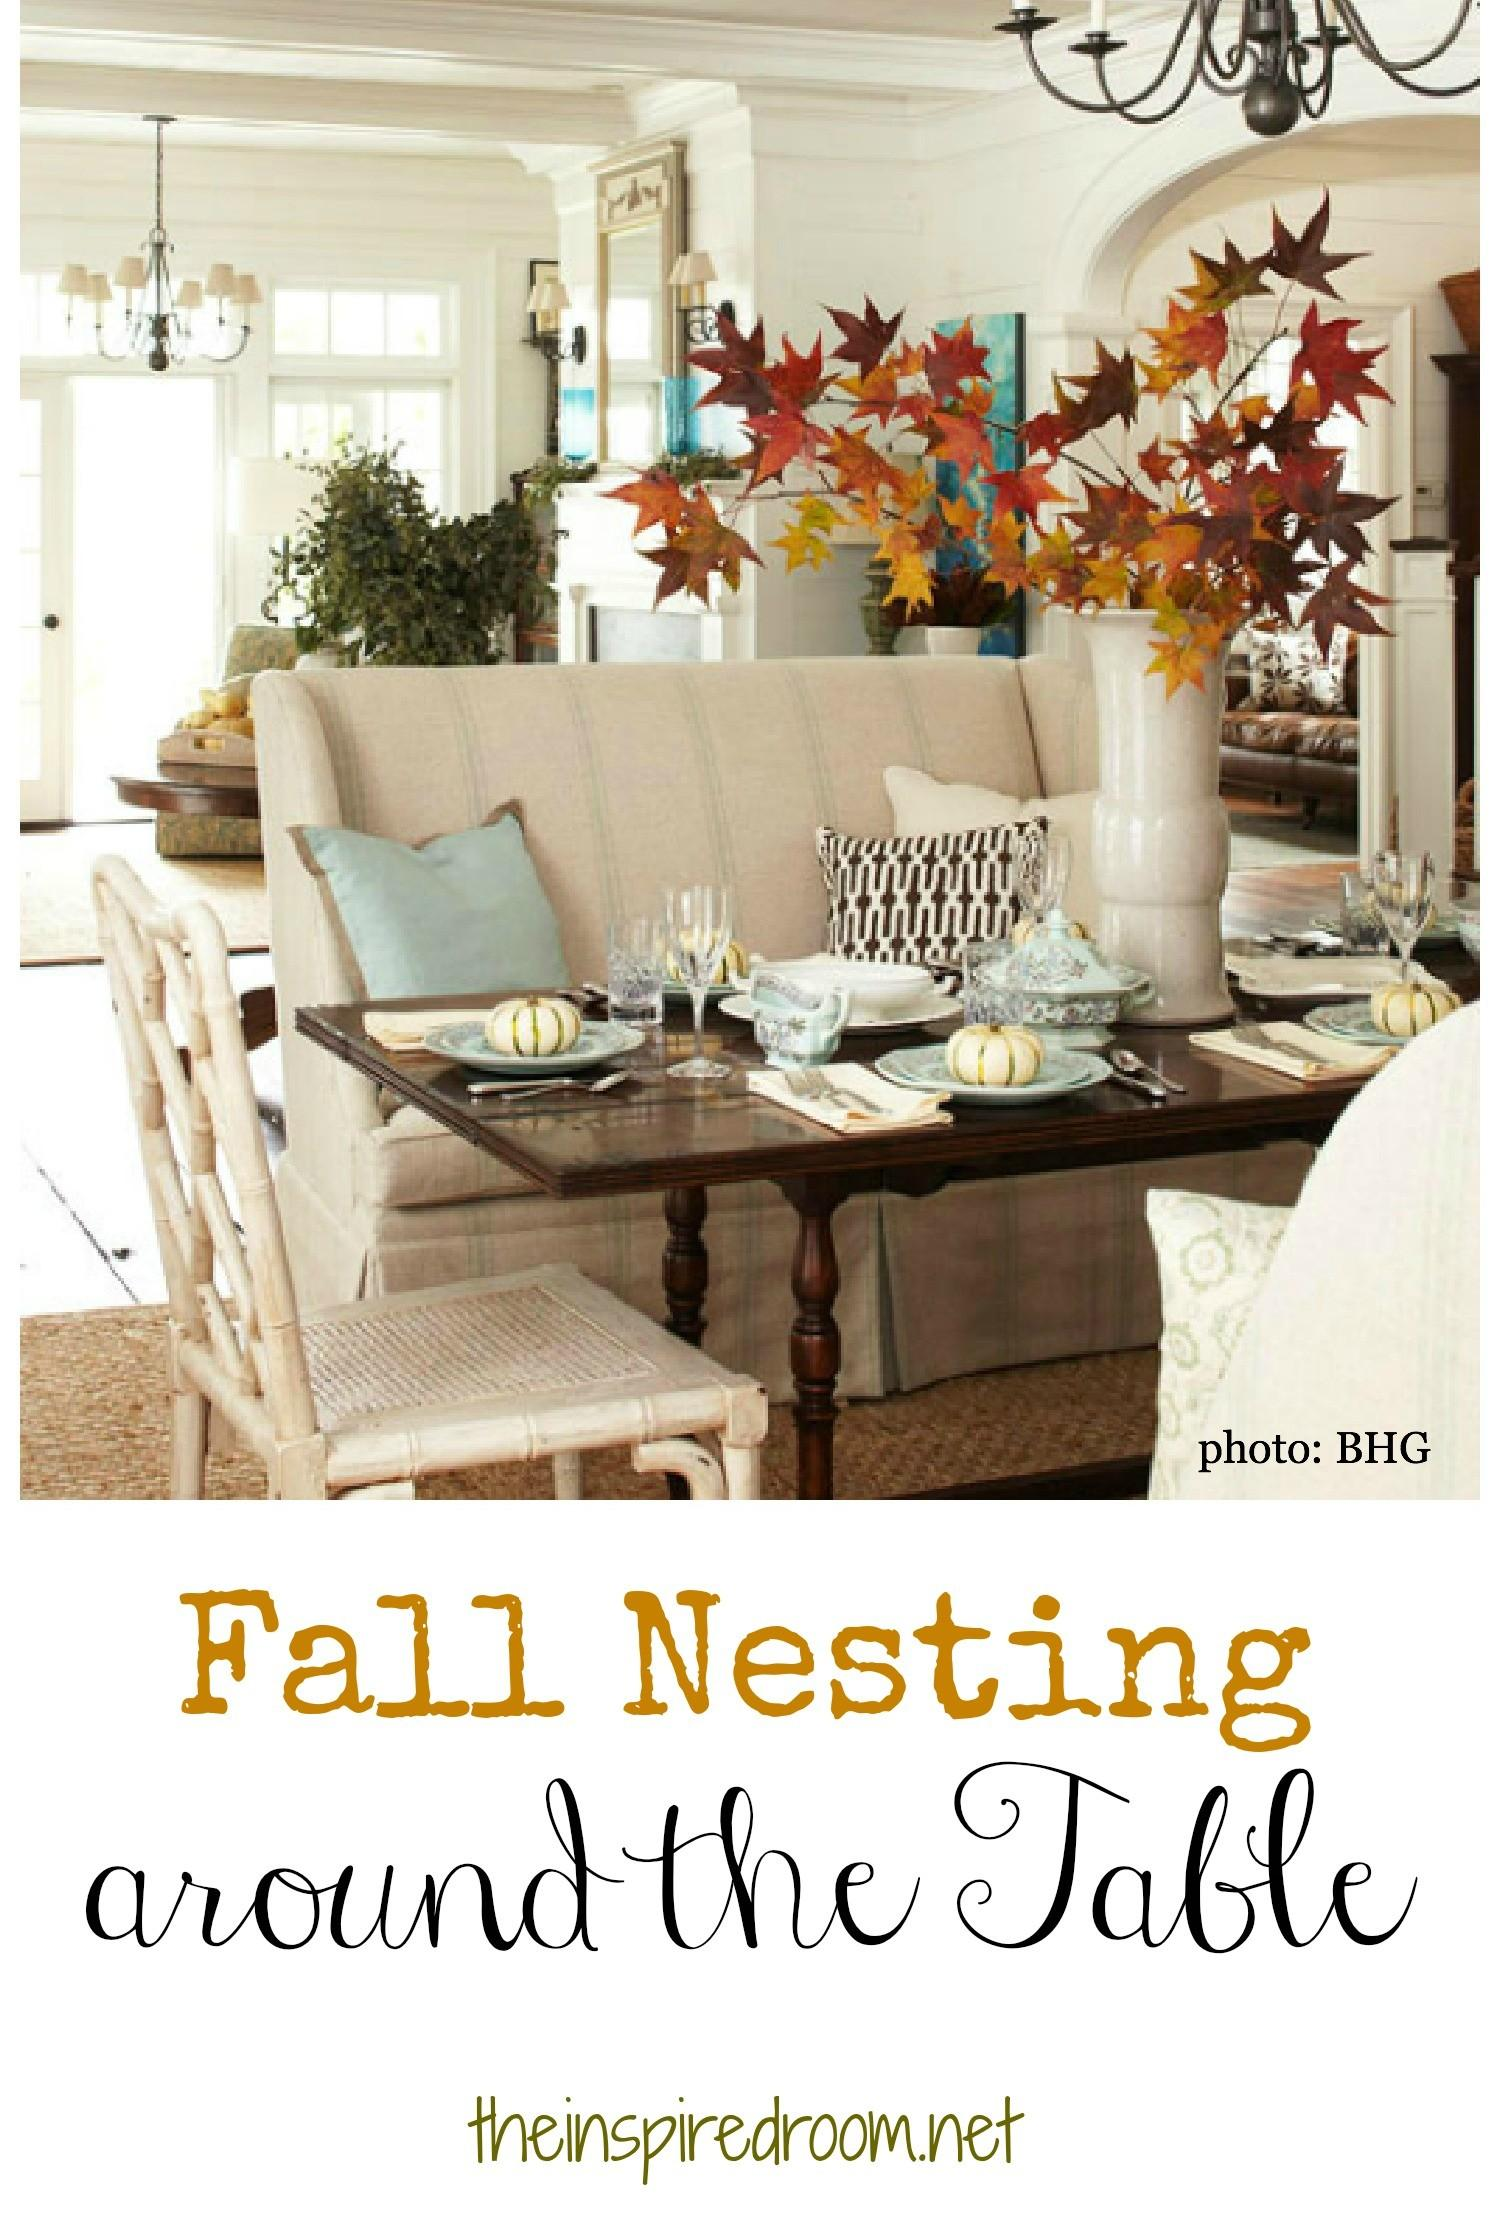 Fall Nesting Around Table Inspired Room